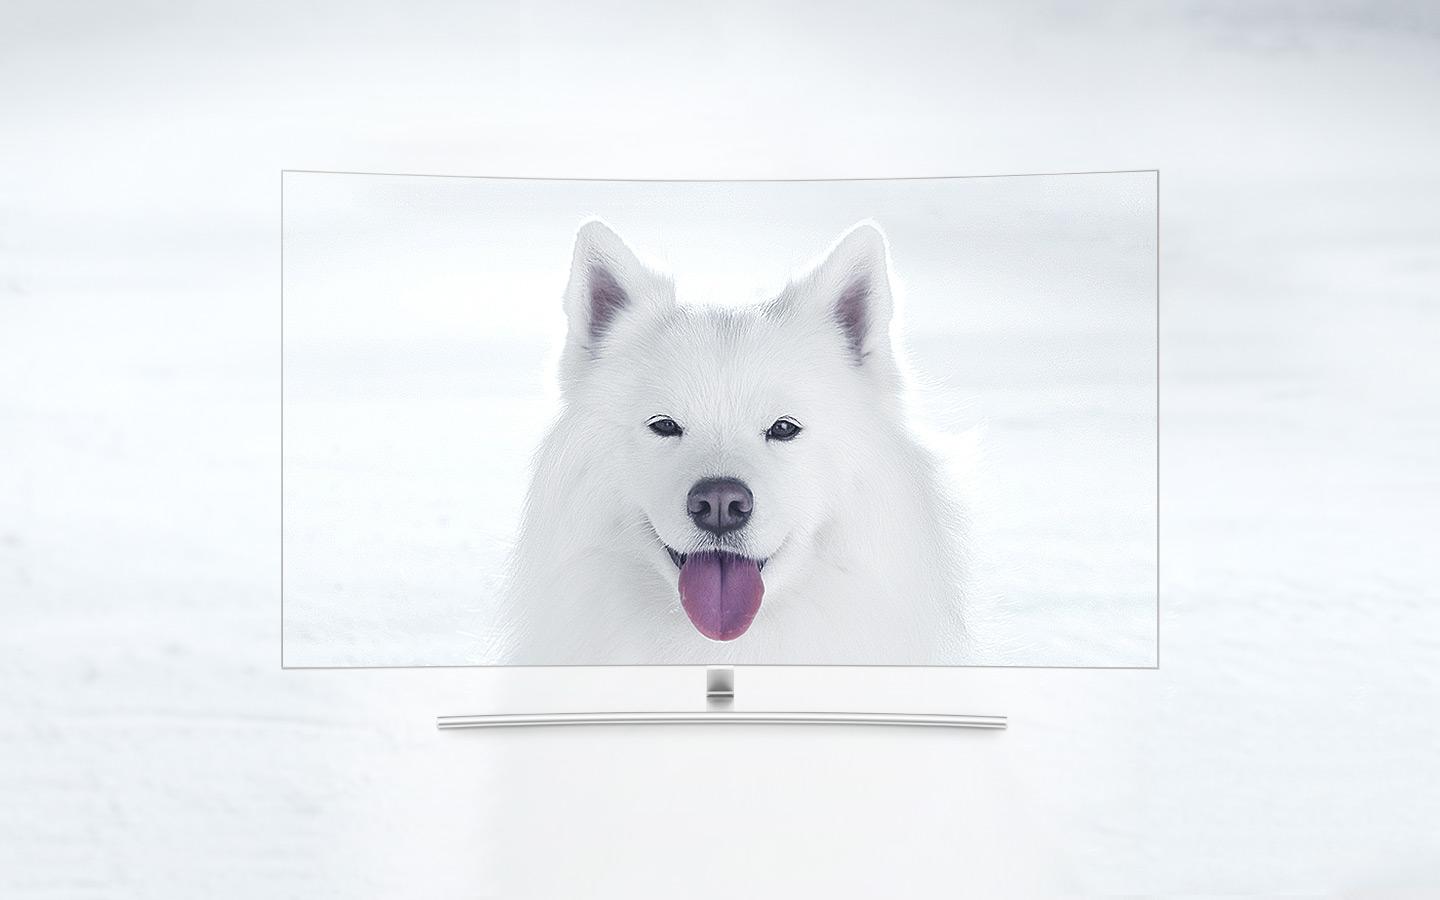 QLED TV Curved has placed directly with front face and on its screen shows an white puppy in a snowfield. The closer we go to 1500 nits, the more clearly we can see the puppy's hair which couldn't be distinguished from the snow at first.